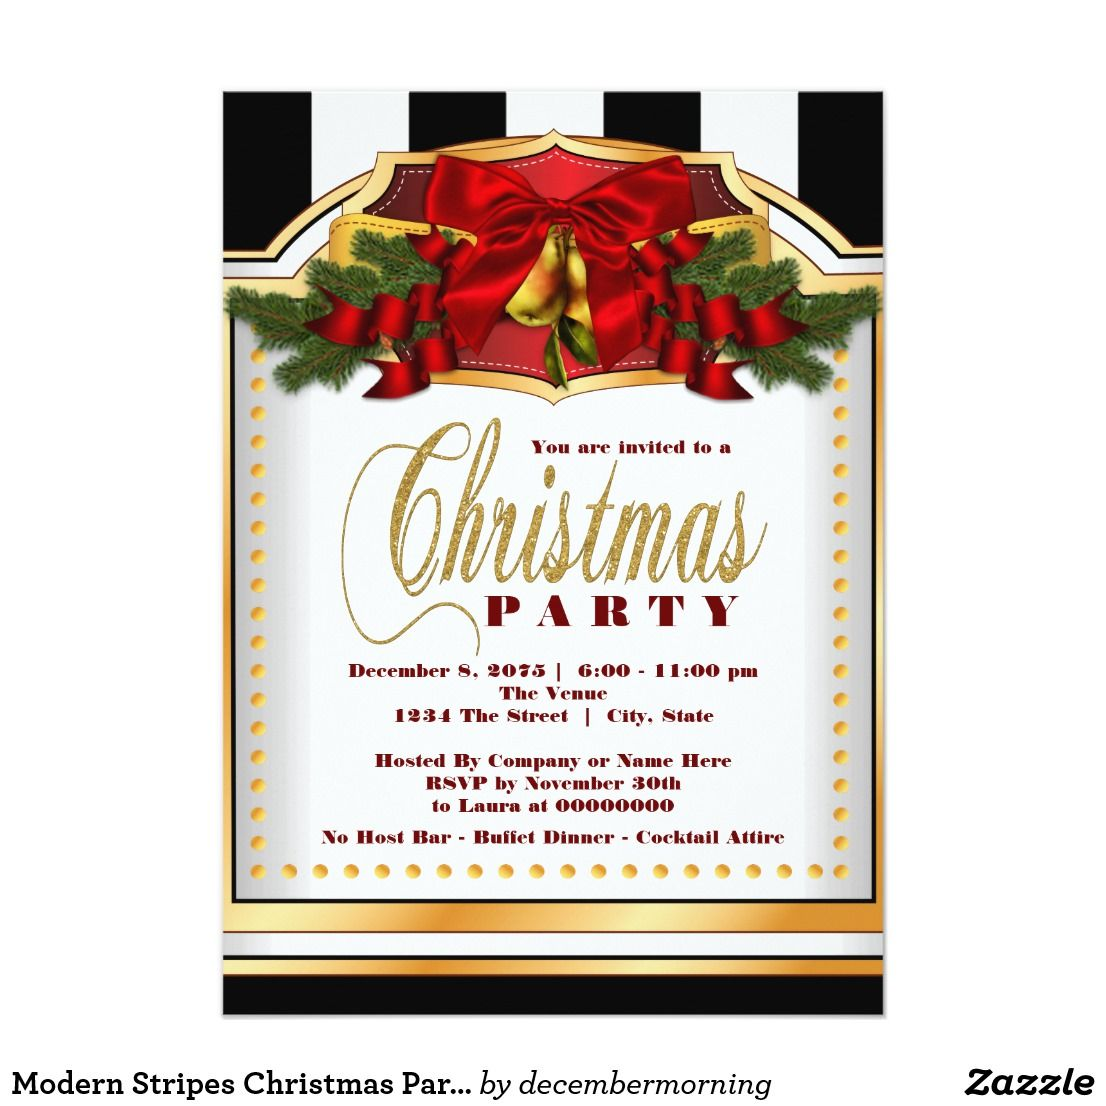 Modern Stripes Christmas Party Card